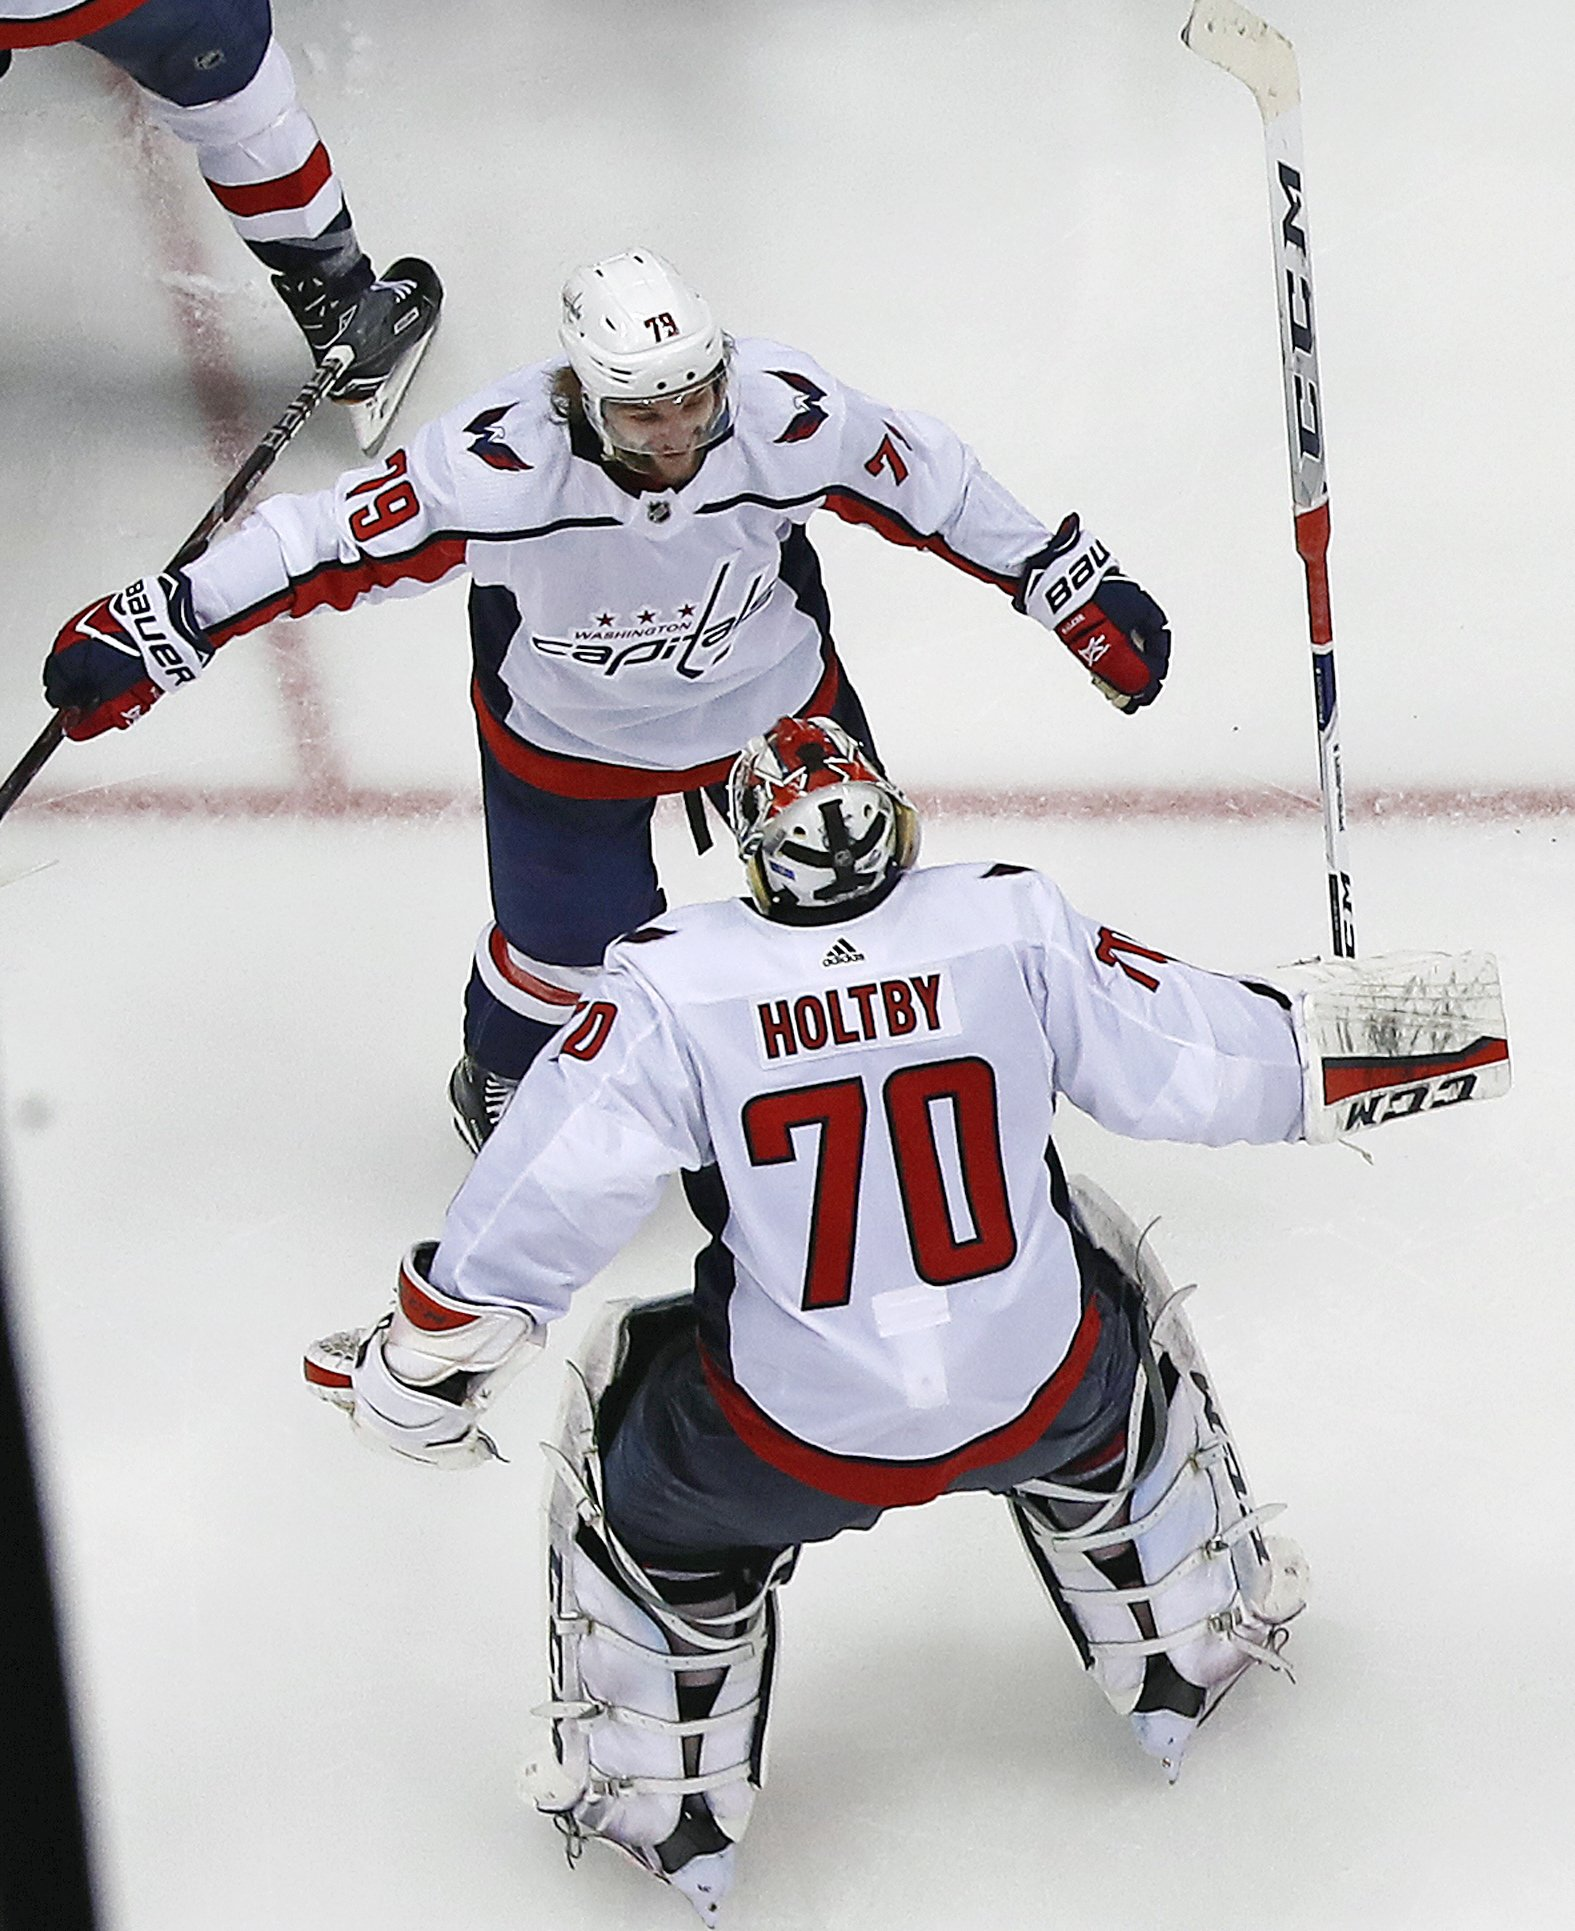 b8d1b9fcb17 Capitals exorcise ghosts to reach Eastern Conference finals